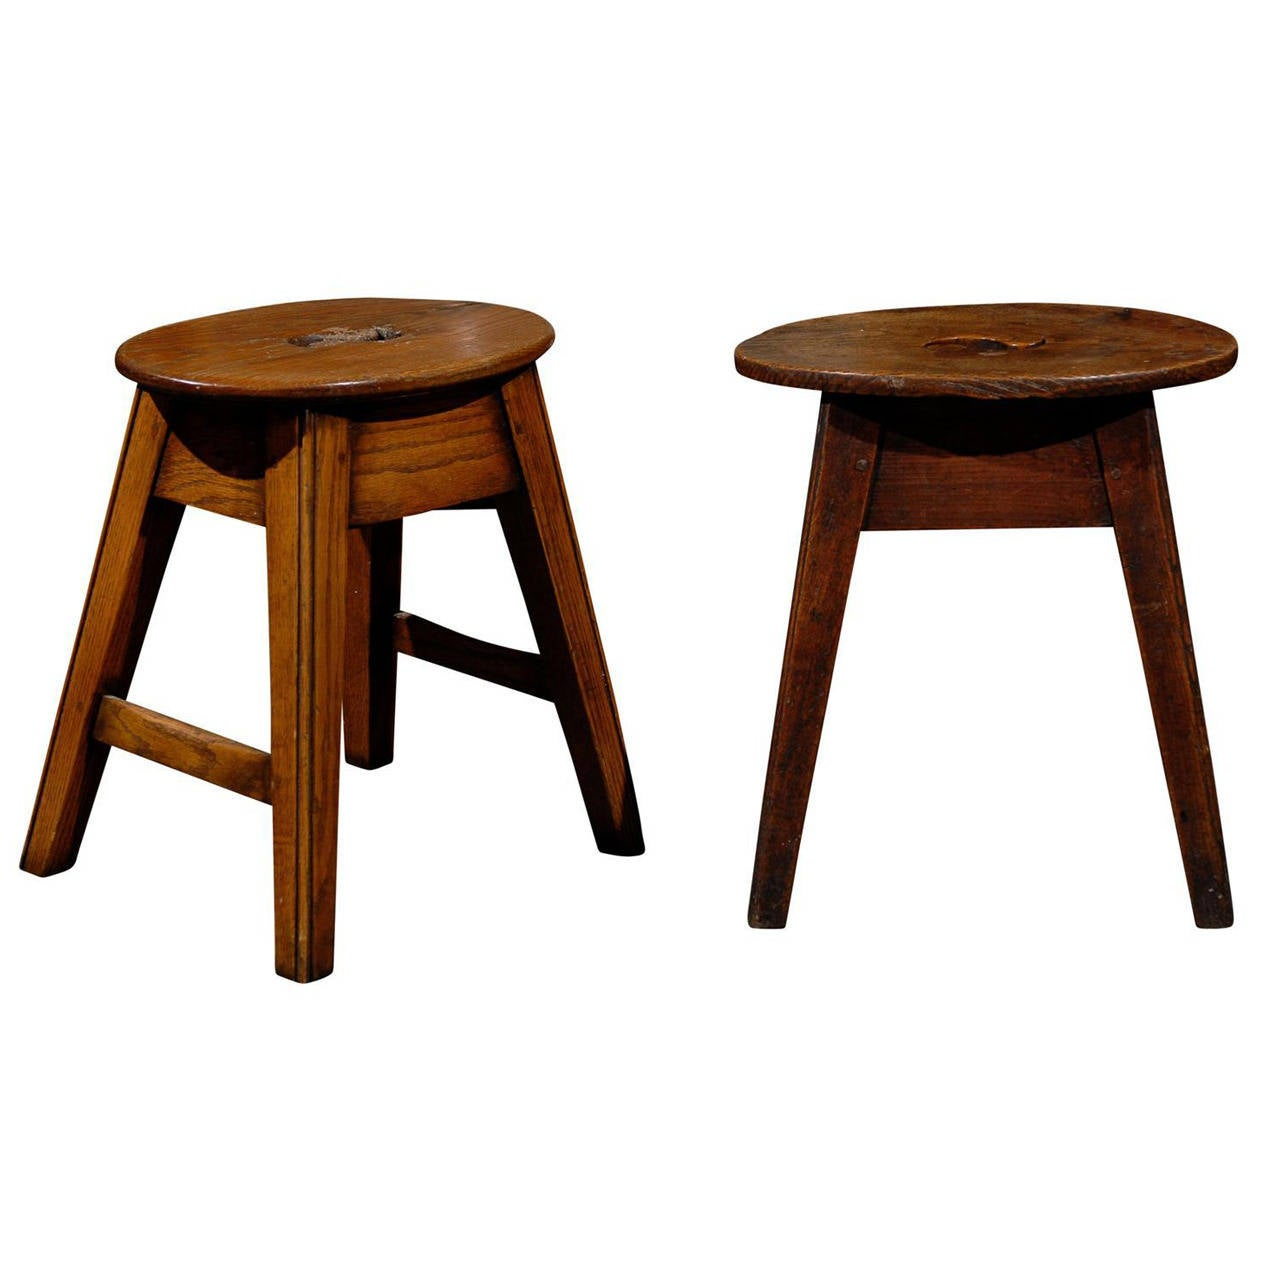 Two Oval Top Stools For Sale At 1stdibs